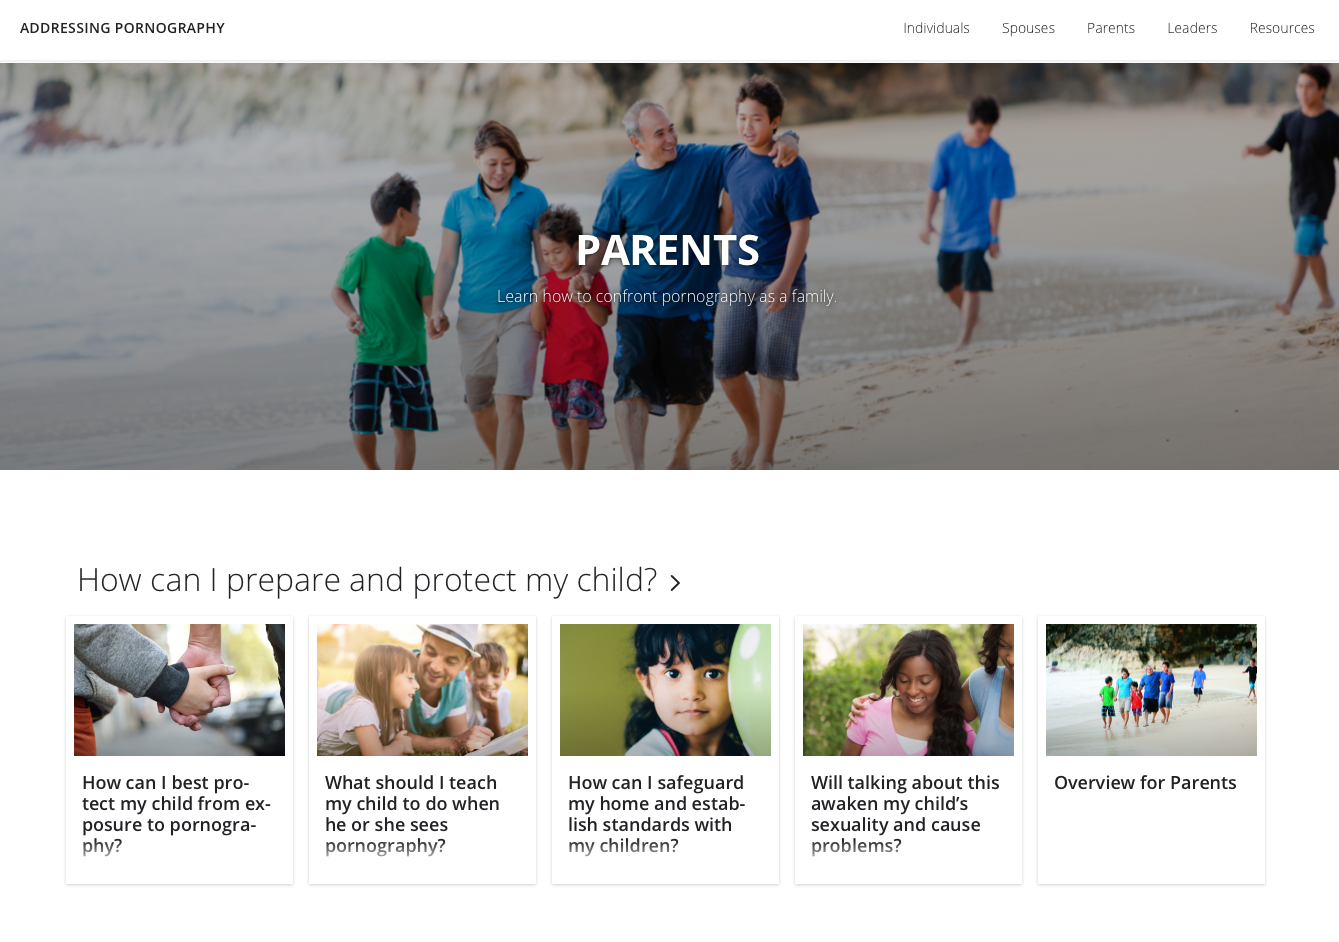 On a new Church web site, addressingpornography.lds.org, parents can learn about safeguarding against and responding to children's exposures to pornography.